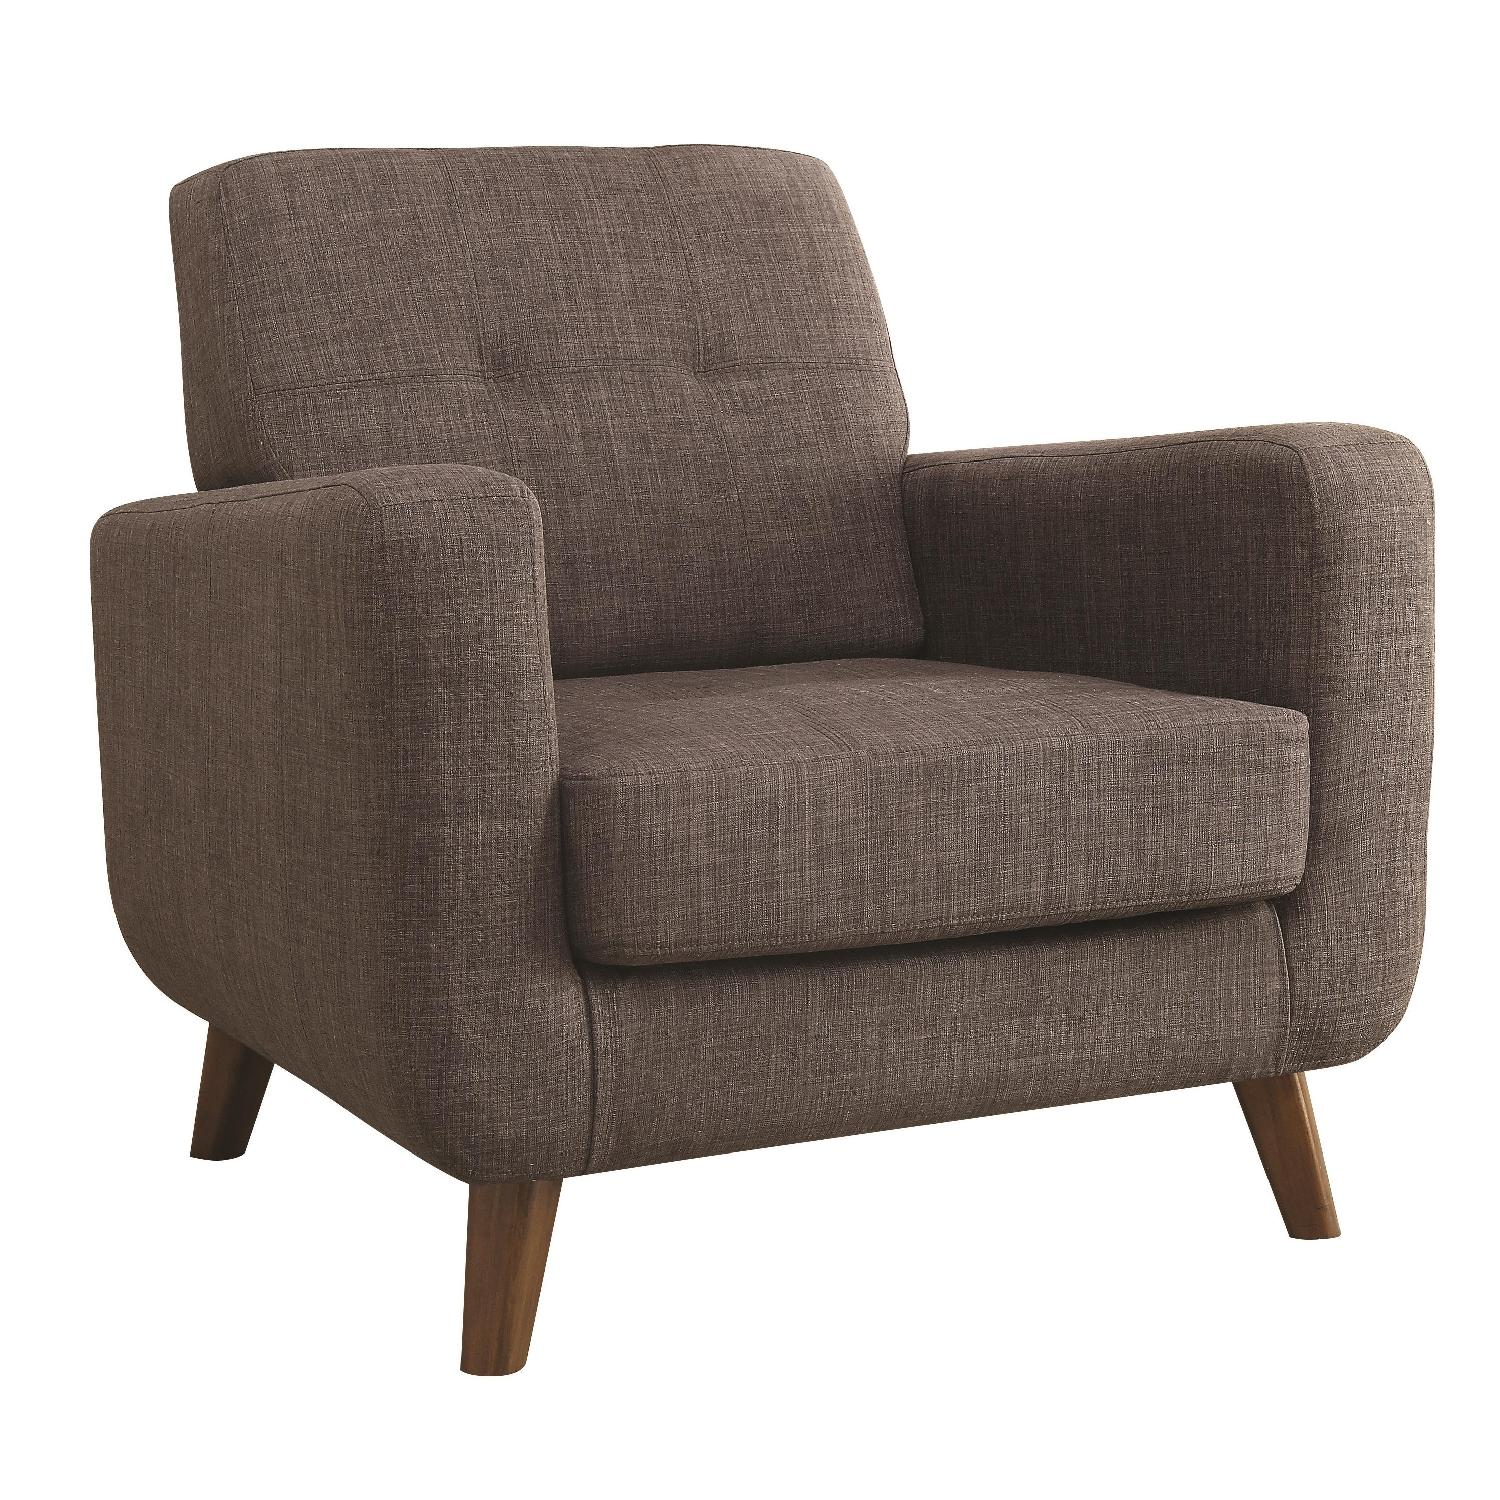 Accent Chair in Grey Fabric w/ Tufted Back Design